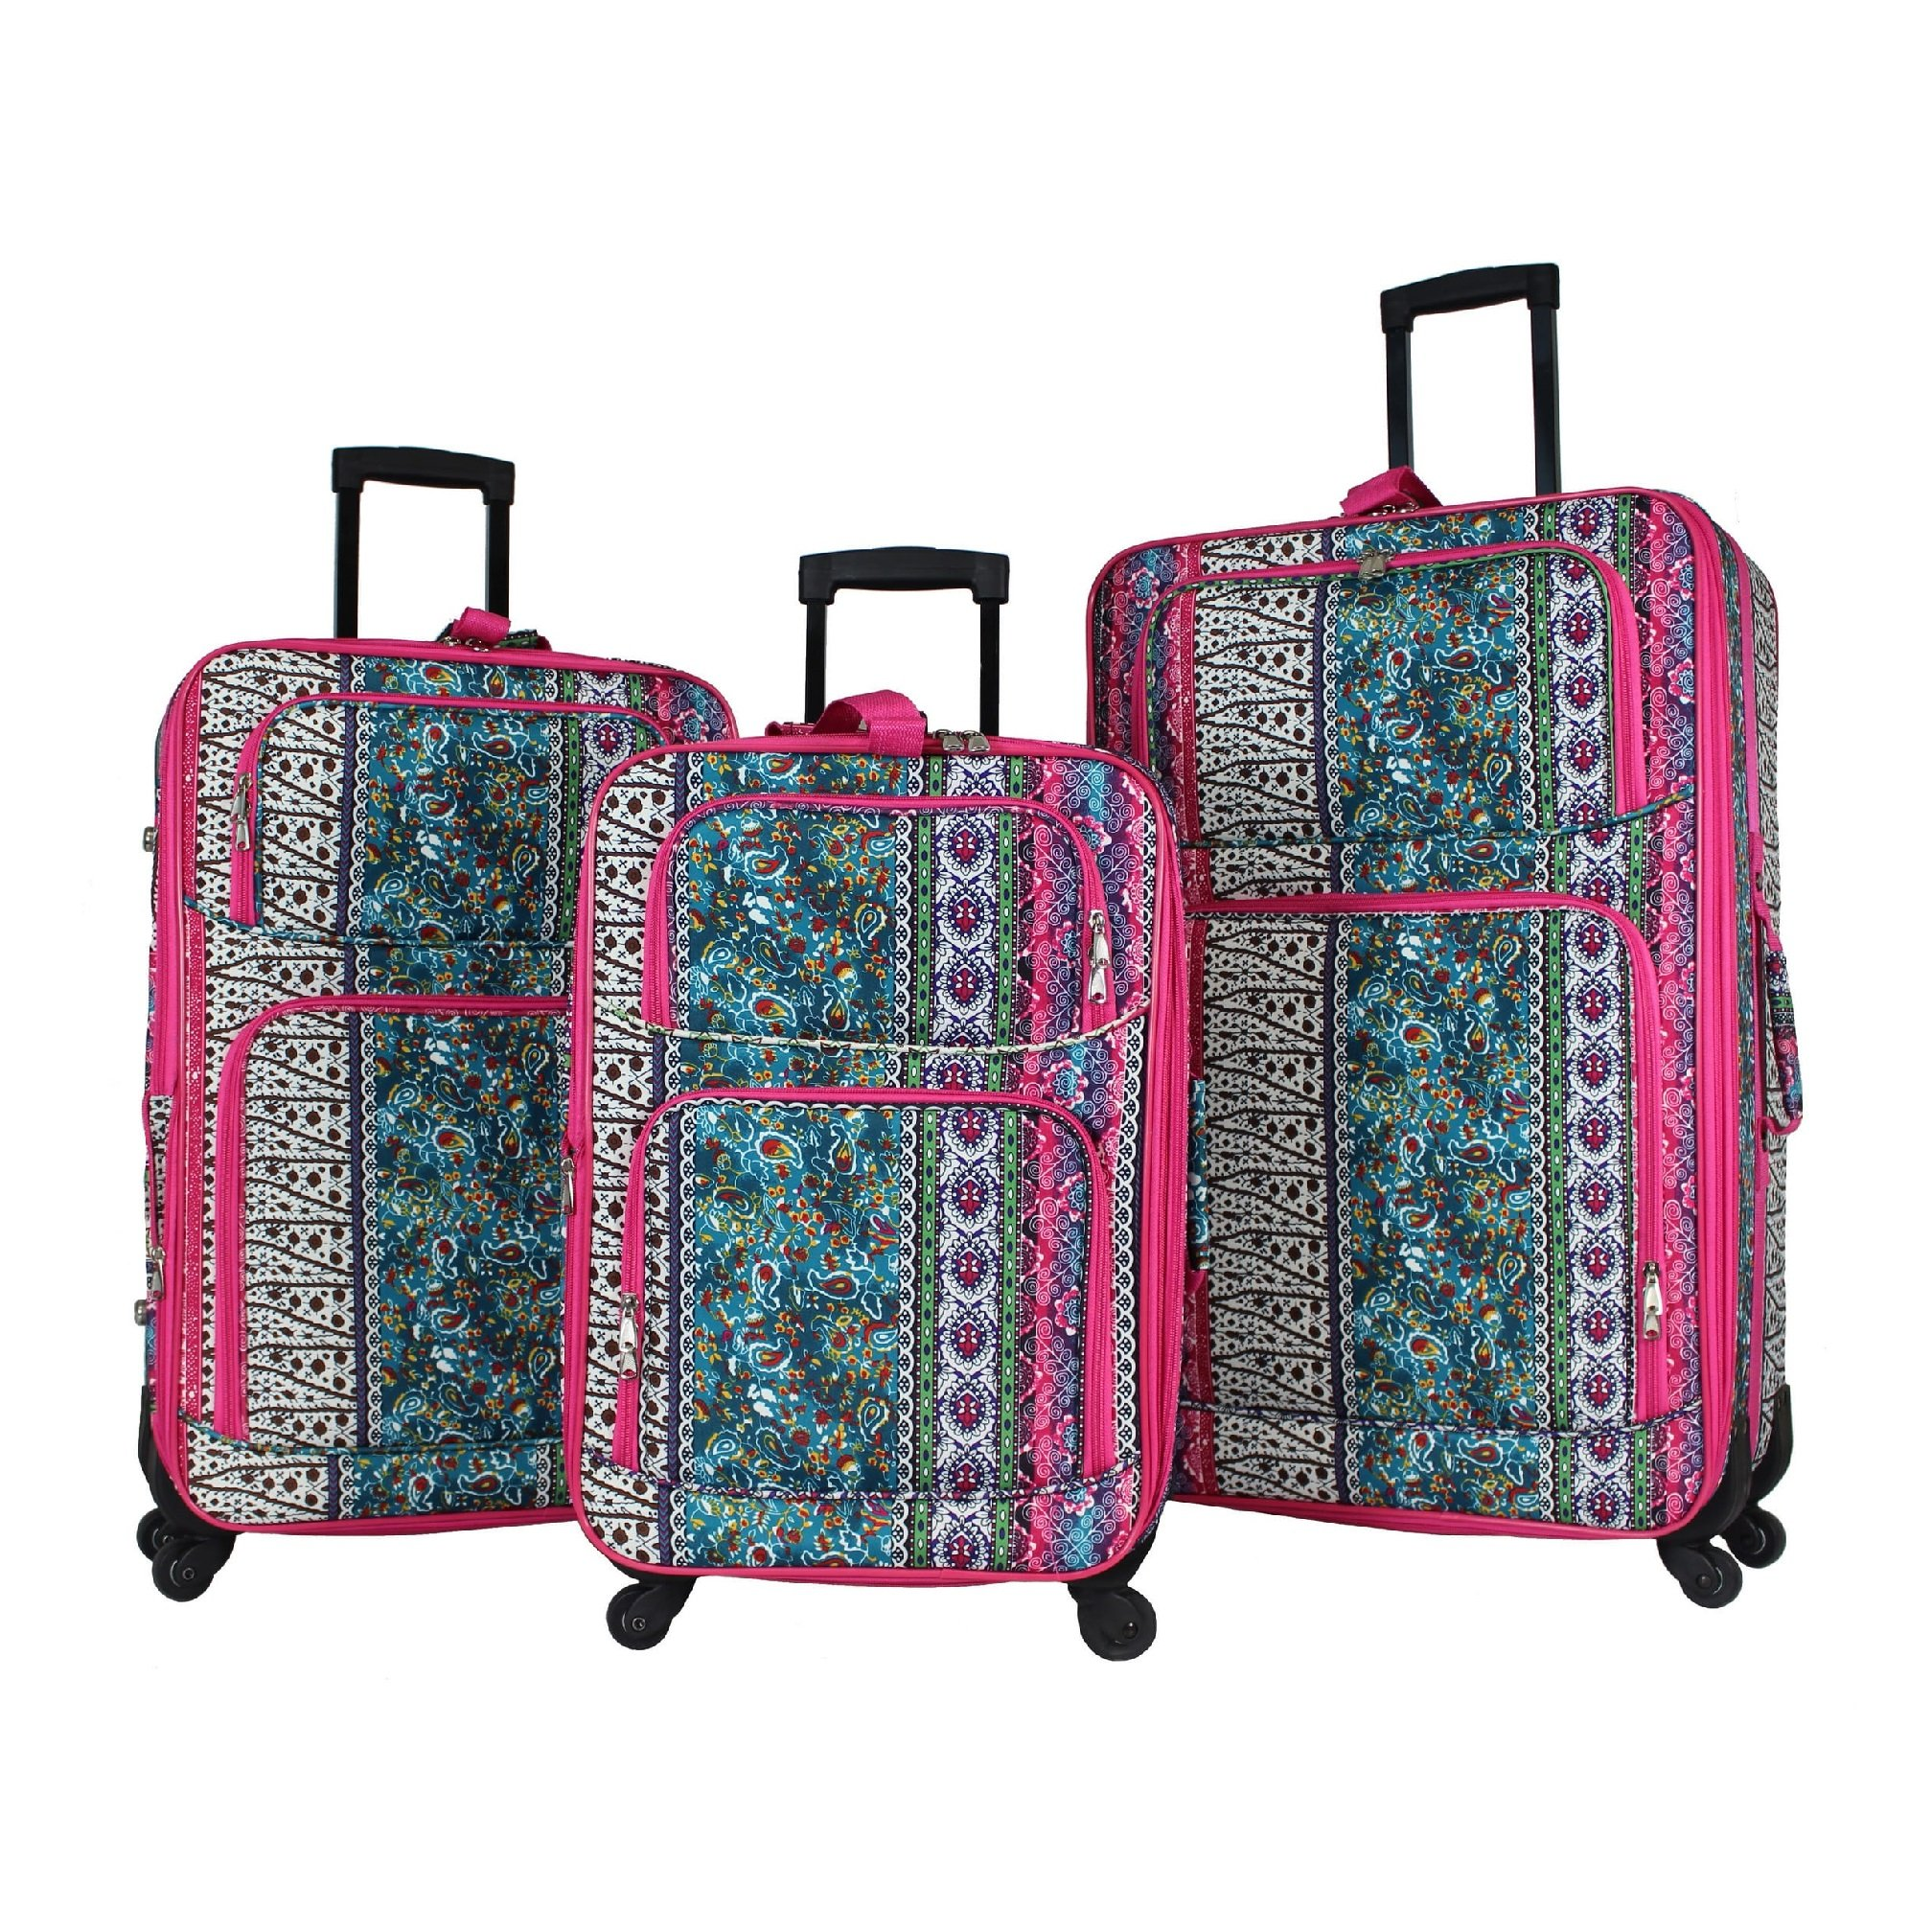 3 Piece Geometric Nature Floral Paisley Motif Rolling Lightweight Expandable Carry On Luggage Set, Printed Zigzag Stripes Chevron Theme, Softside, Multi Compartment, Soft Travel Suitcases, Pink, Blue